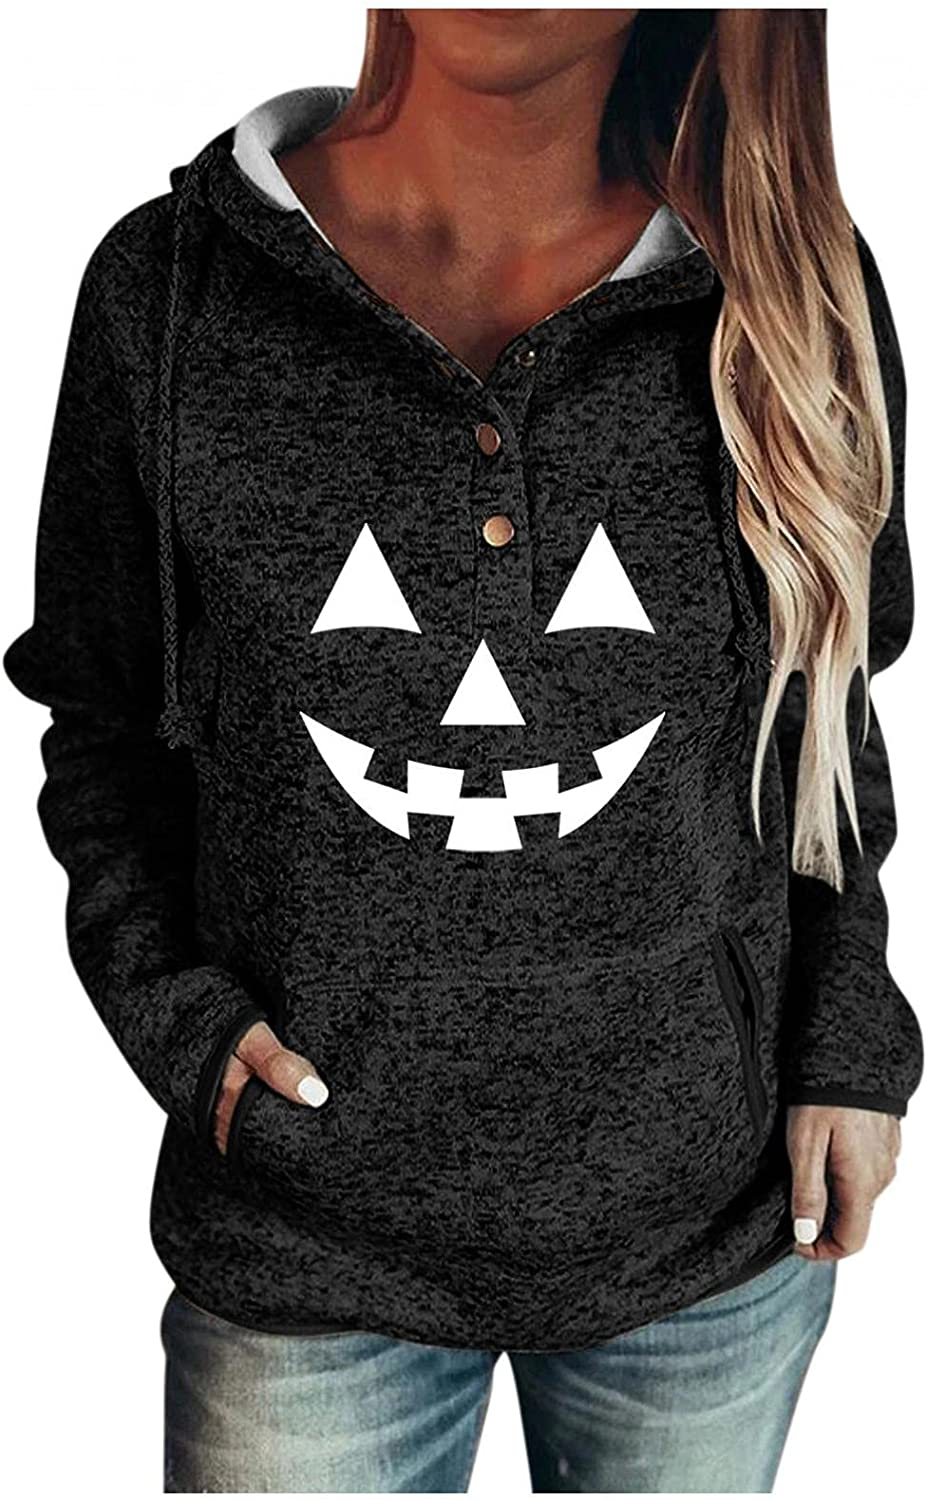 felwors Hoodies for Women, Womens Pullover Button Down Drawstring Hoodies with Pockets Casual Long Sleeve Sweatshirts